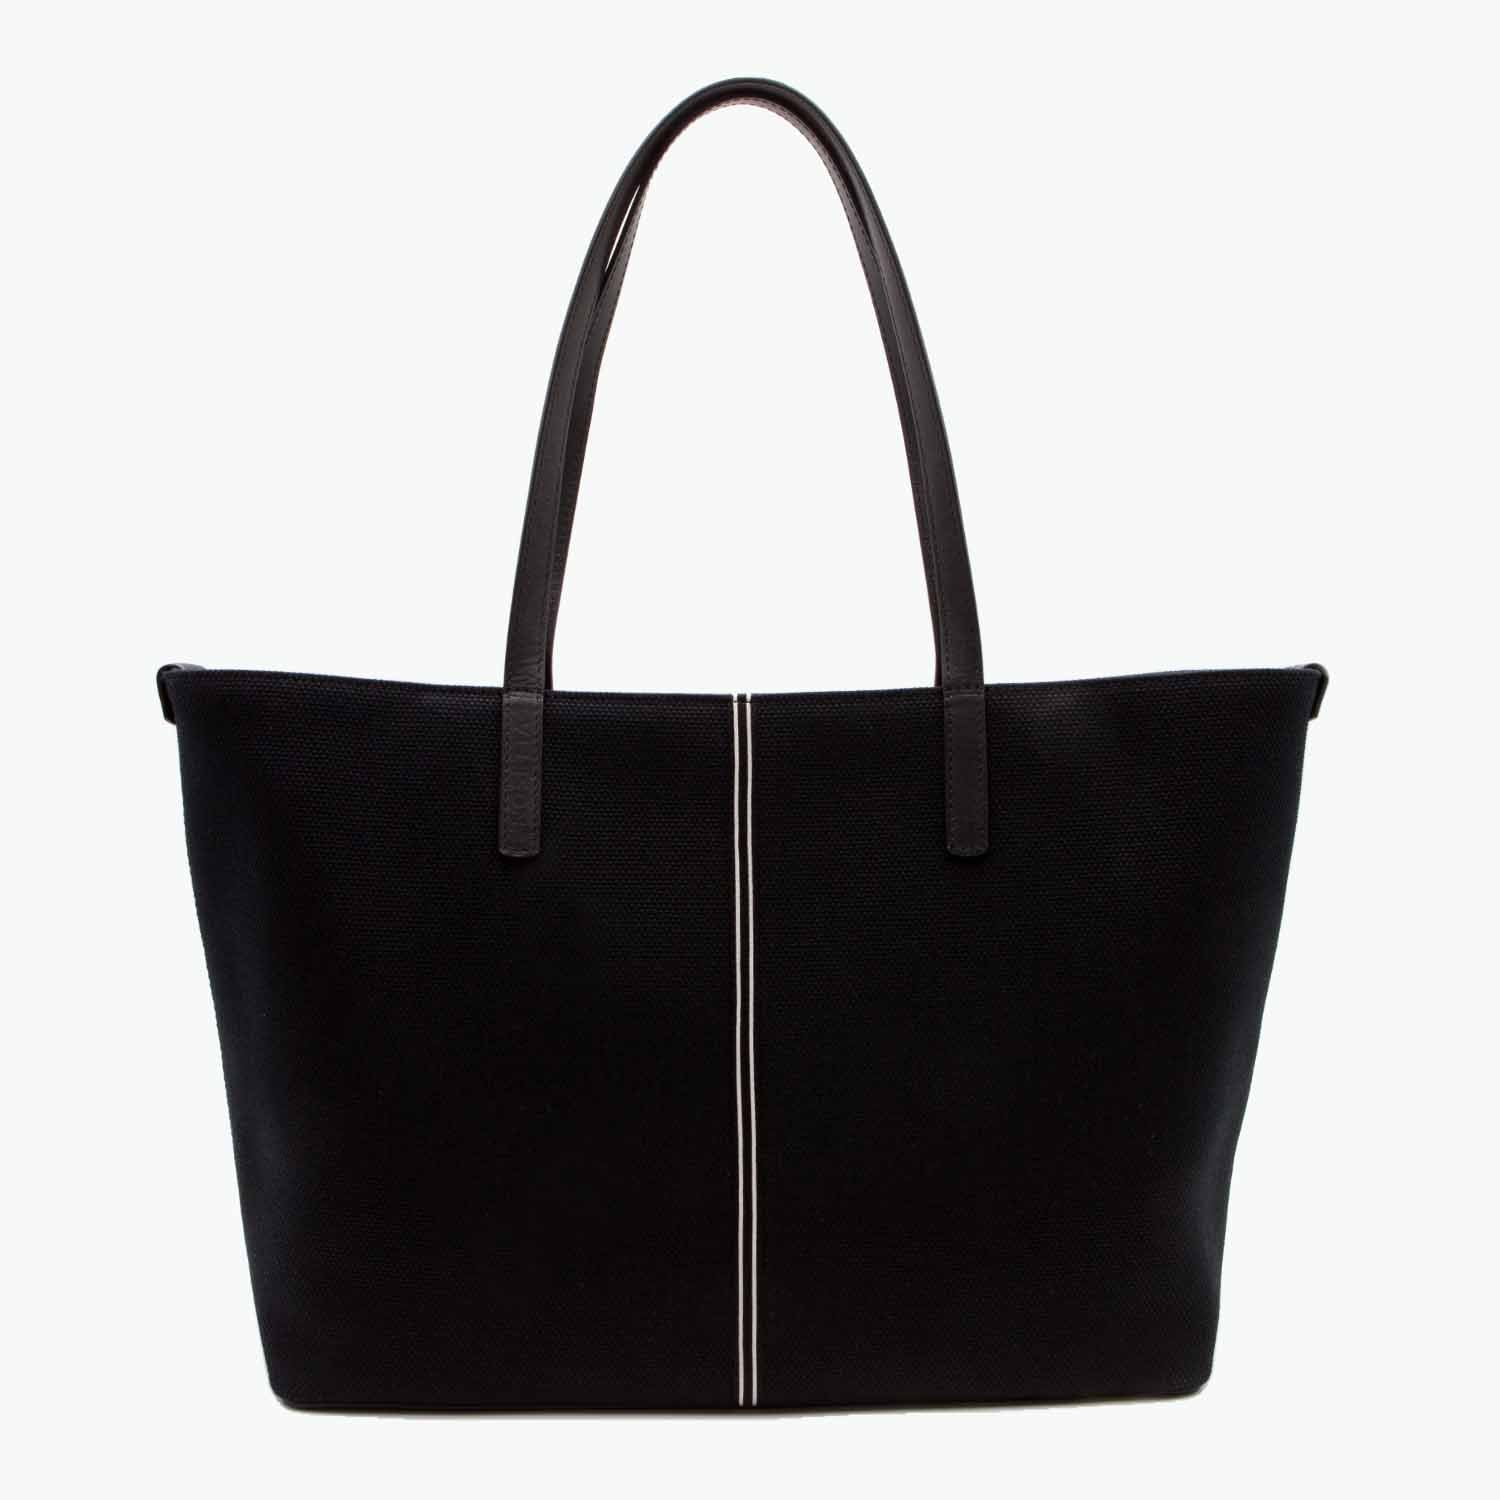 Celesia Medium Tote Cotton Canvas and Leather